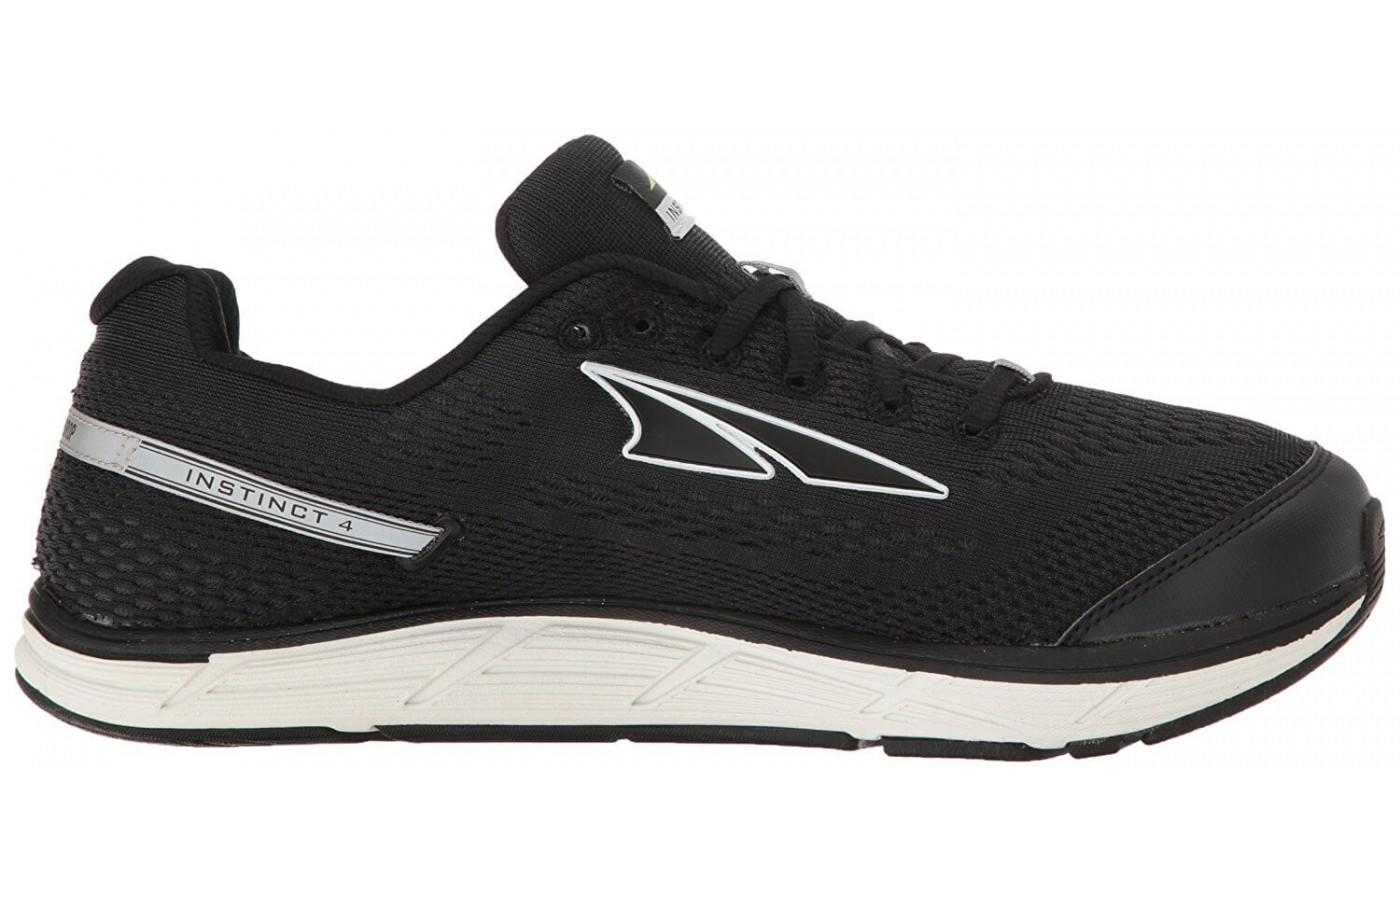 This shoe is best for neutral runners